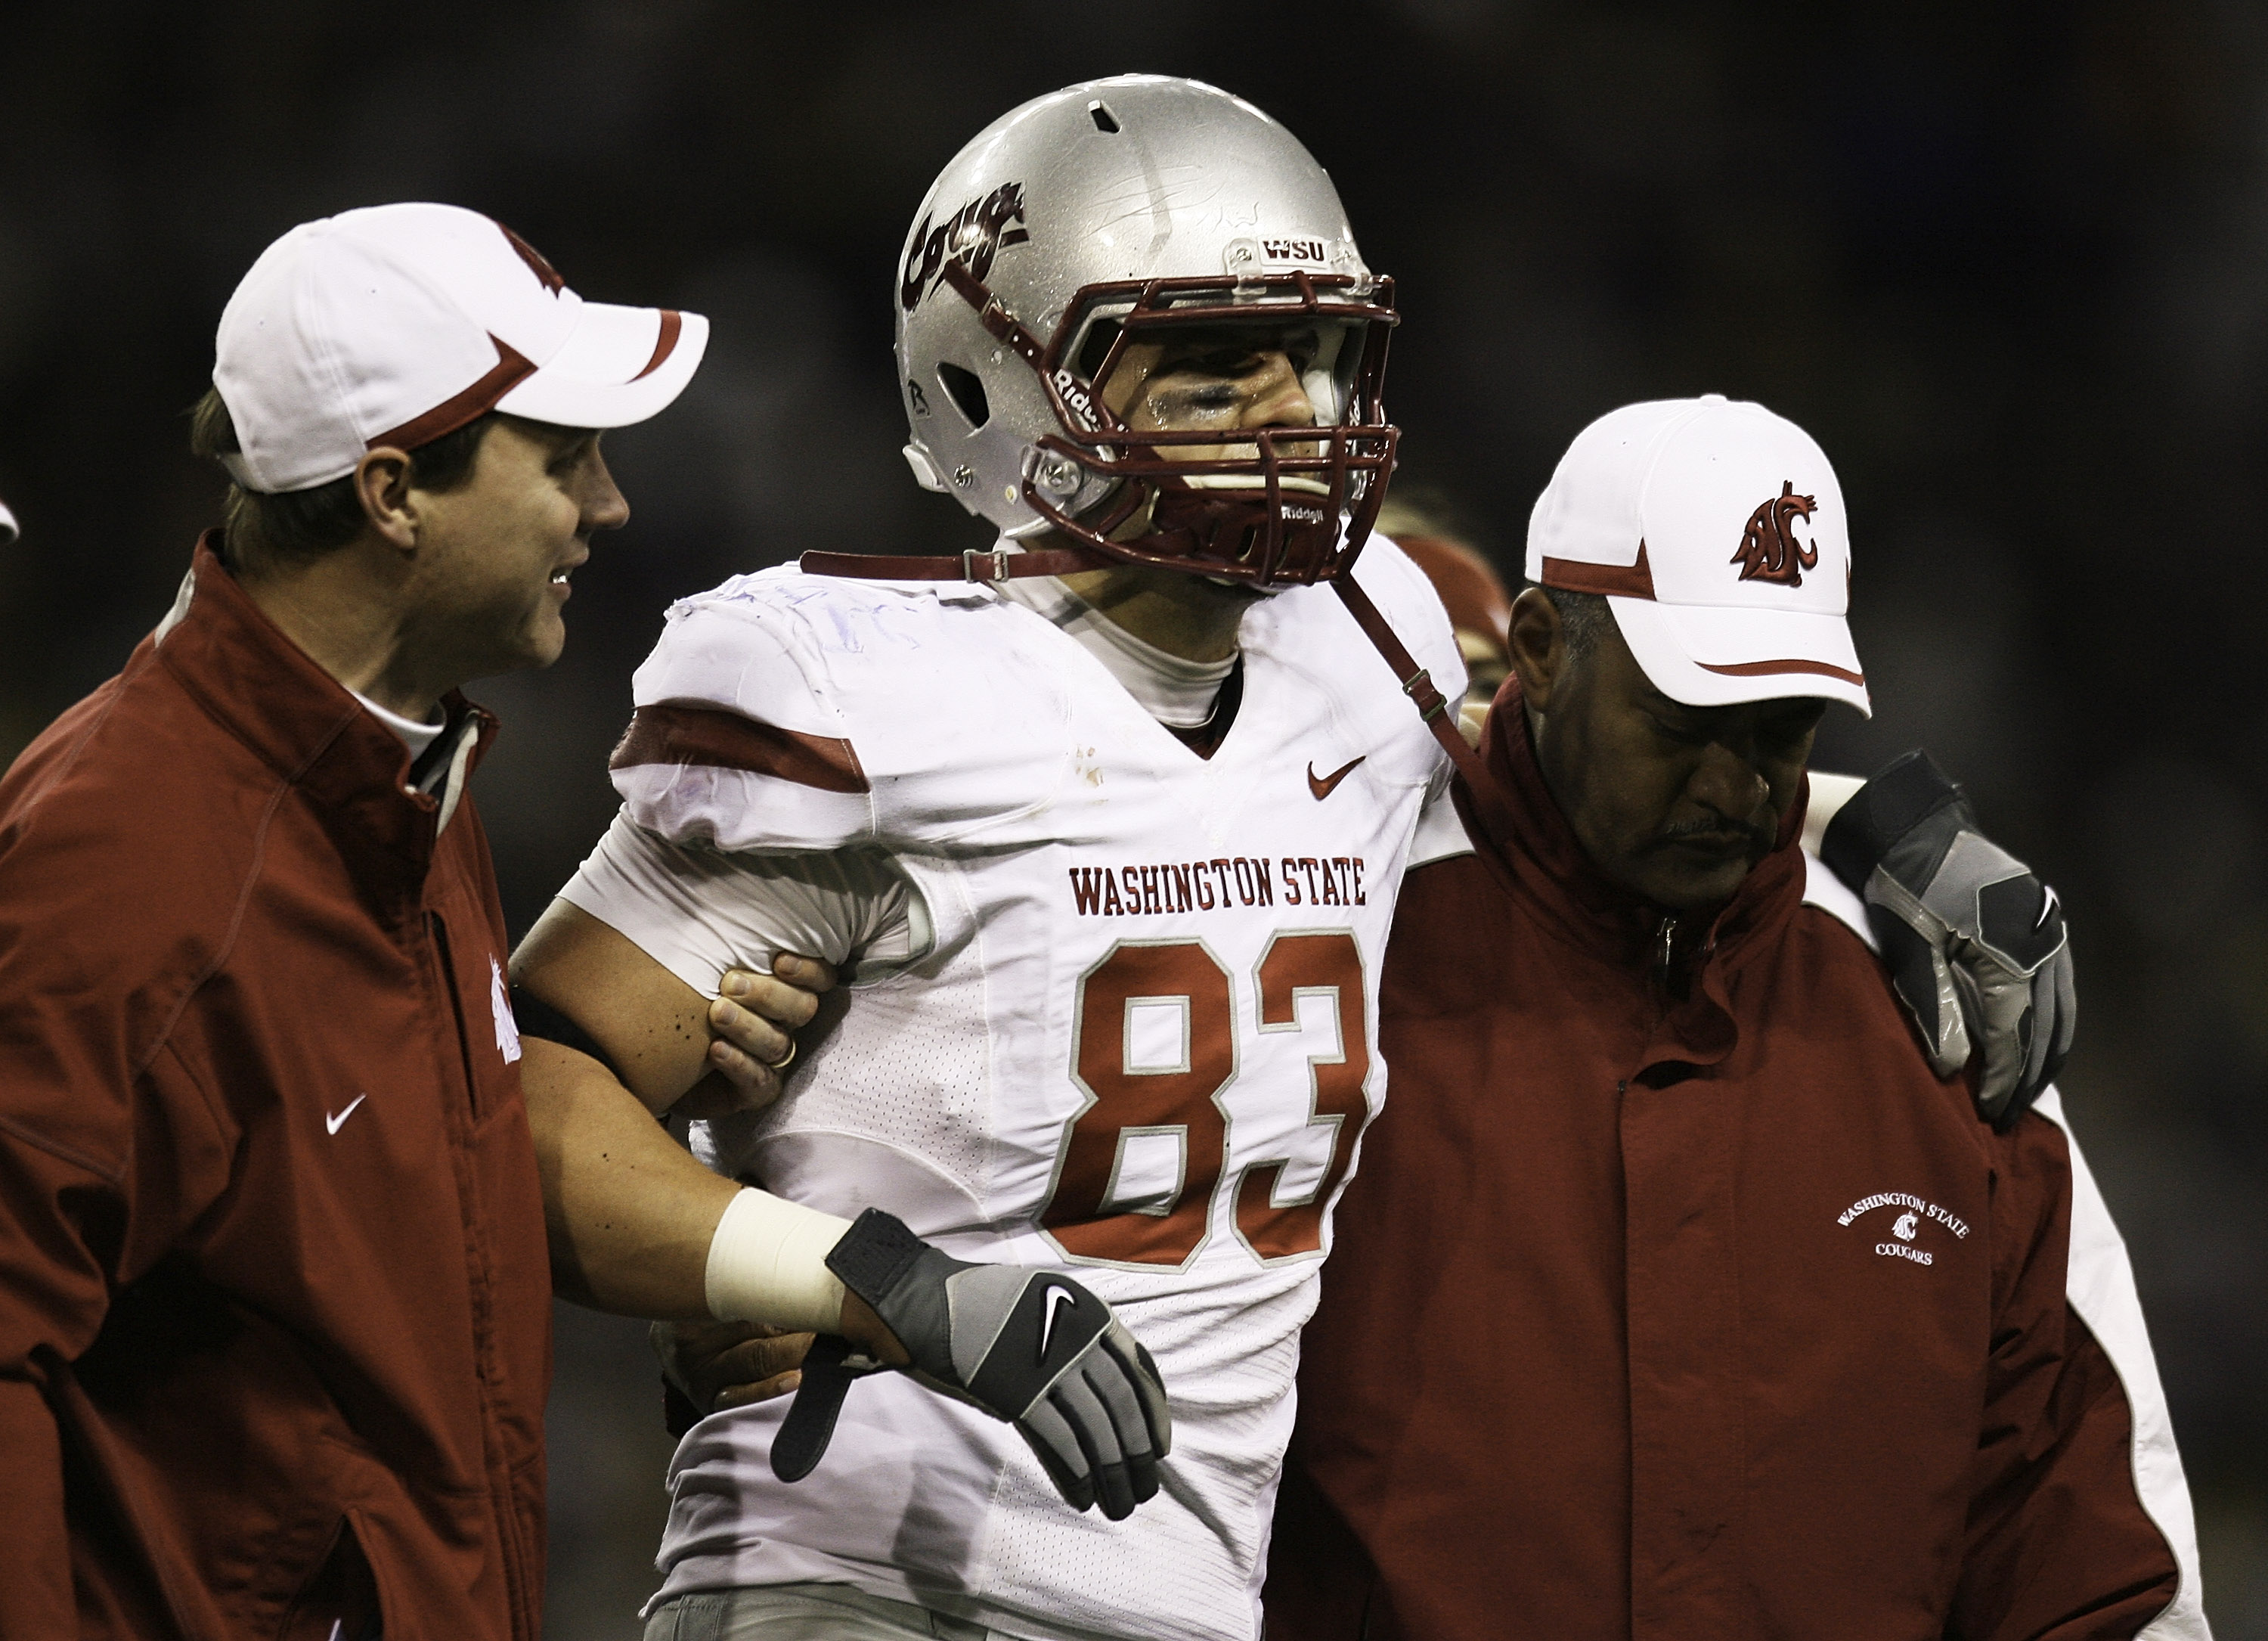 SEATTLE - NOVEMBER 28:  Tight end Zach Tatman #83 of the Washington State Cougars is helped off the field after being injured against the Washington Huskies on November 28, 2009 at Husky Stadium in Seattle, Washington. The Huskies defeated the Cougars 30-